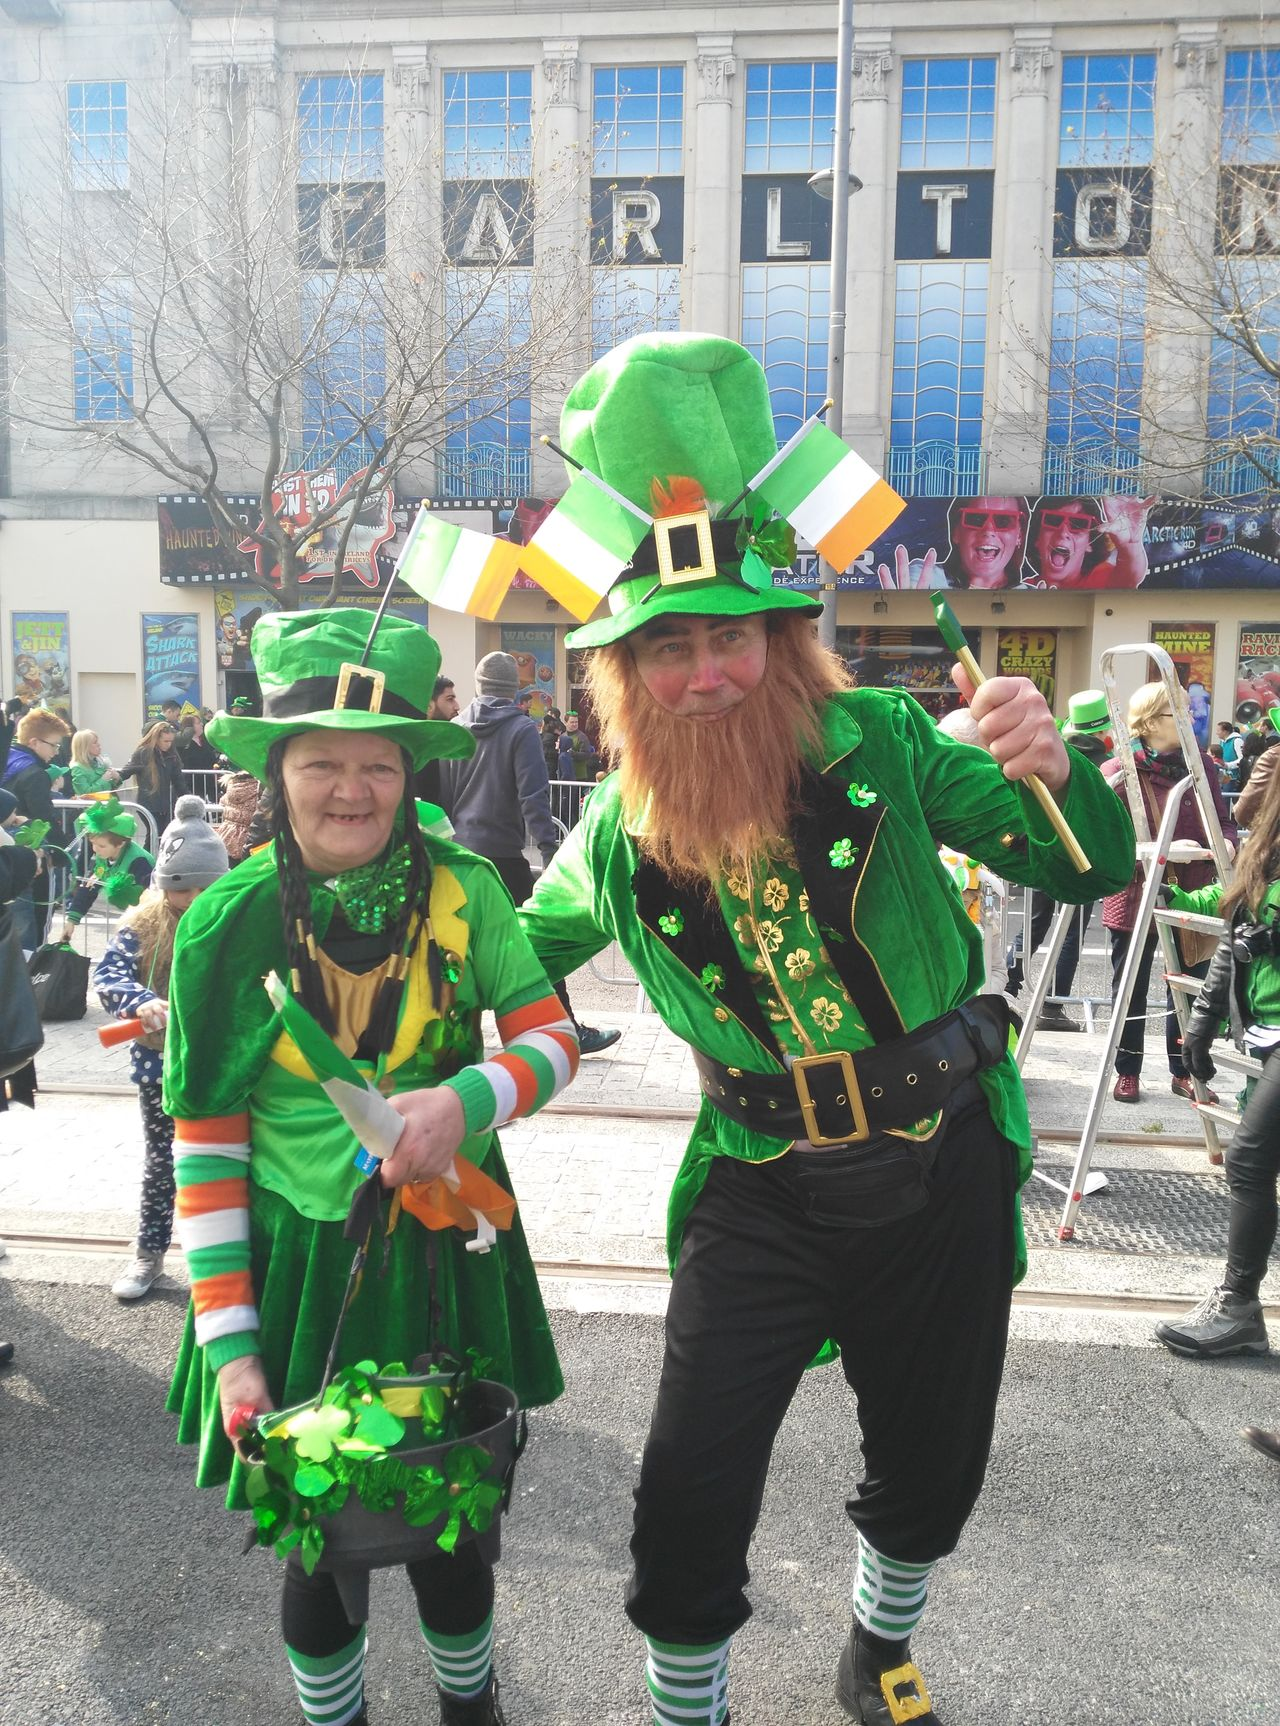 Fun Togetherness Two People Adult Day People Portrait Happiness Real People Outdoors City St. Patrick Day First Eyeem Photo